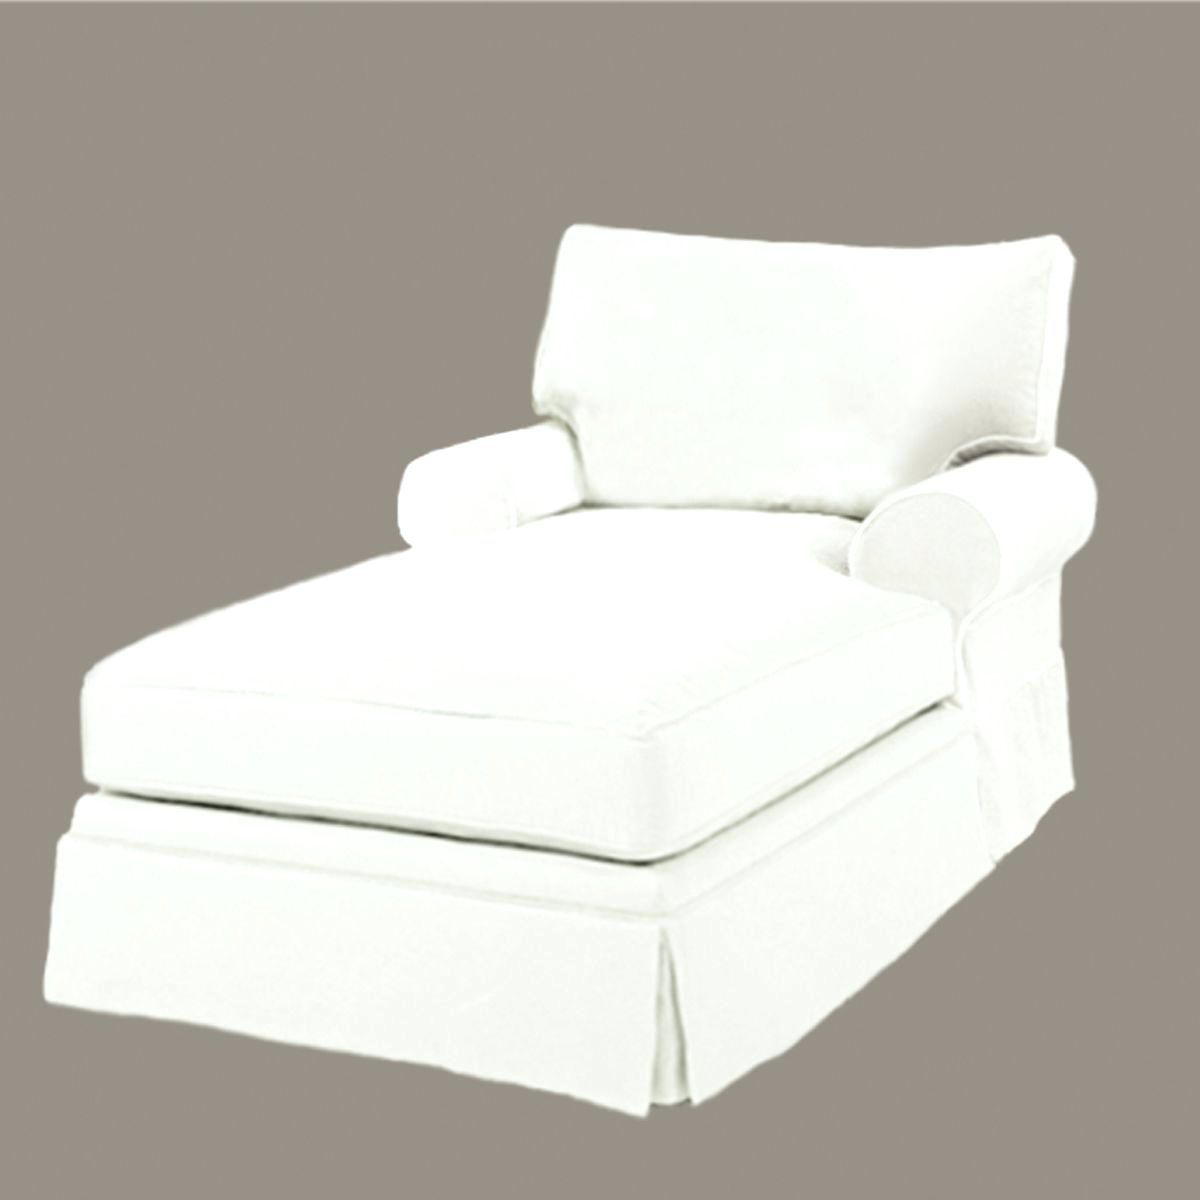 Fashionable Cover For Indoor Chaise Lounge Chair • Lounge Chairs Ideas Within Indoor Chaise Lounge Chairs (View 14 of 15)